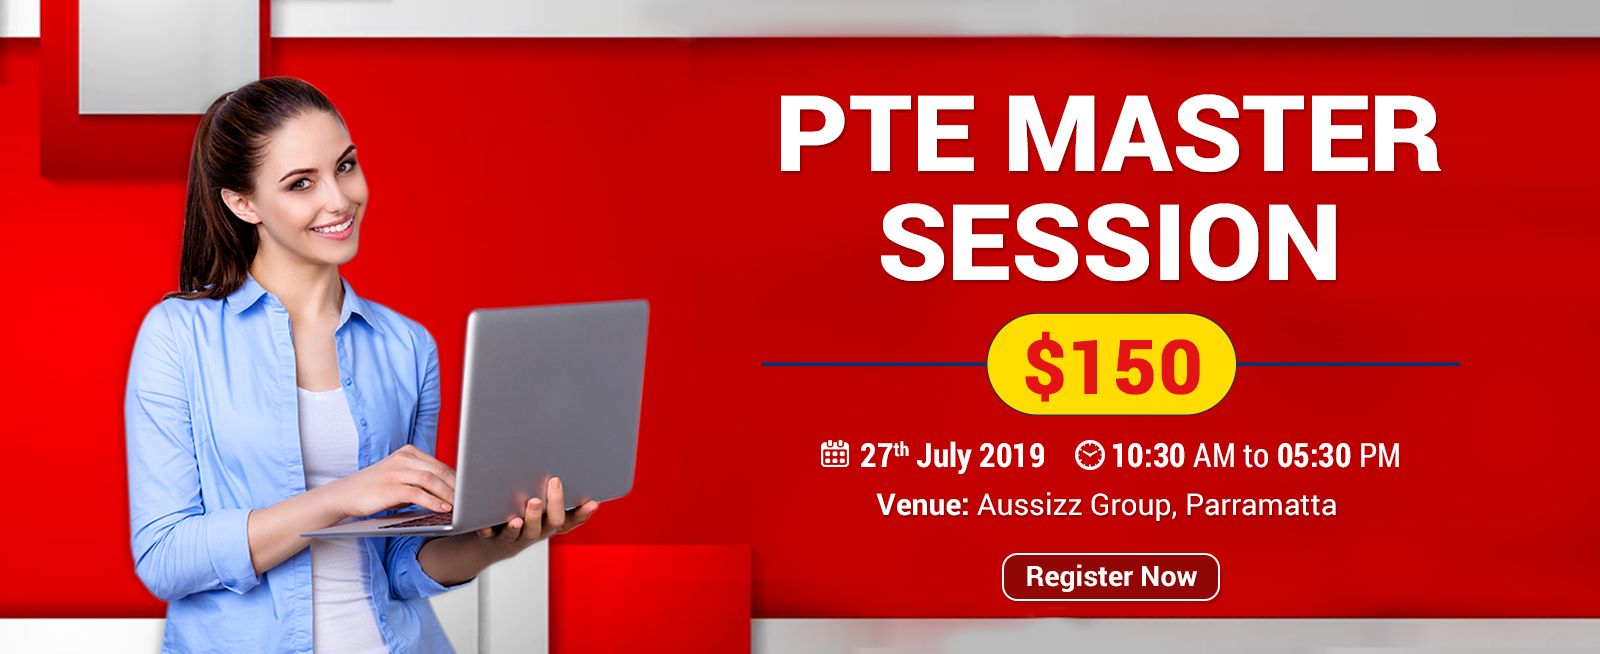 Register for PTE Master Session For $150 at Parramatta